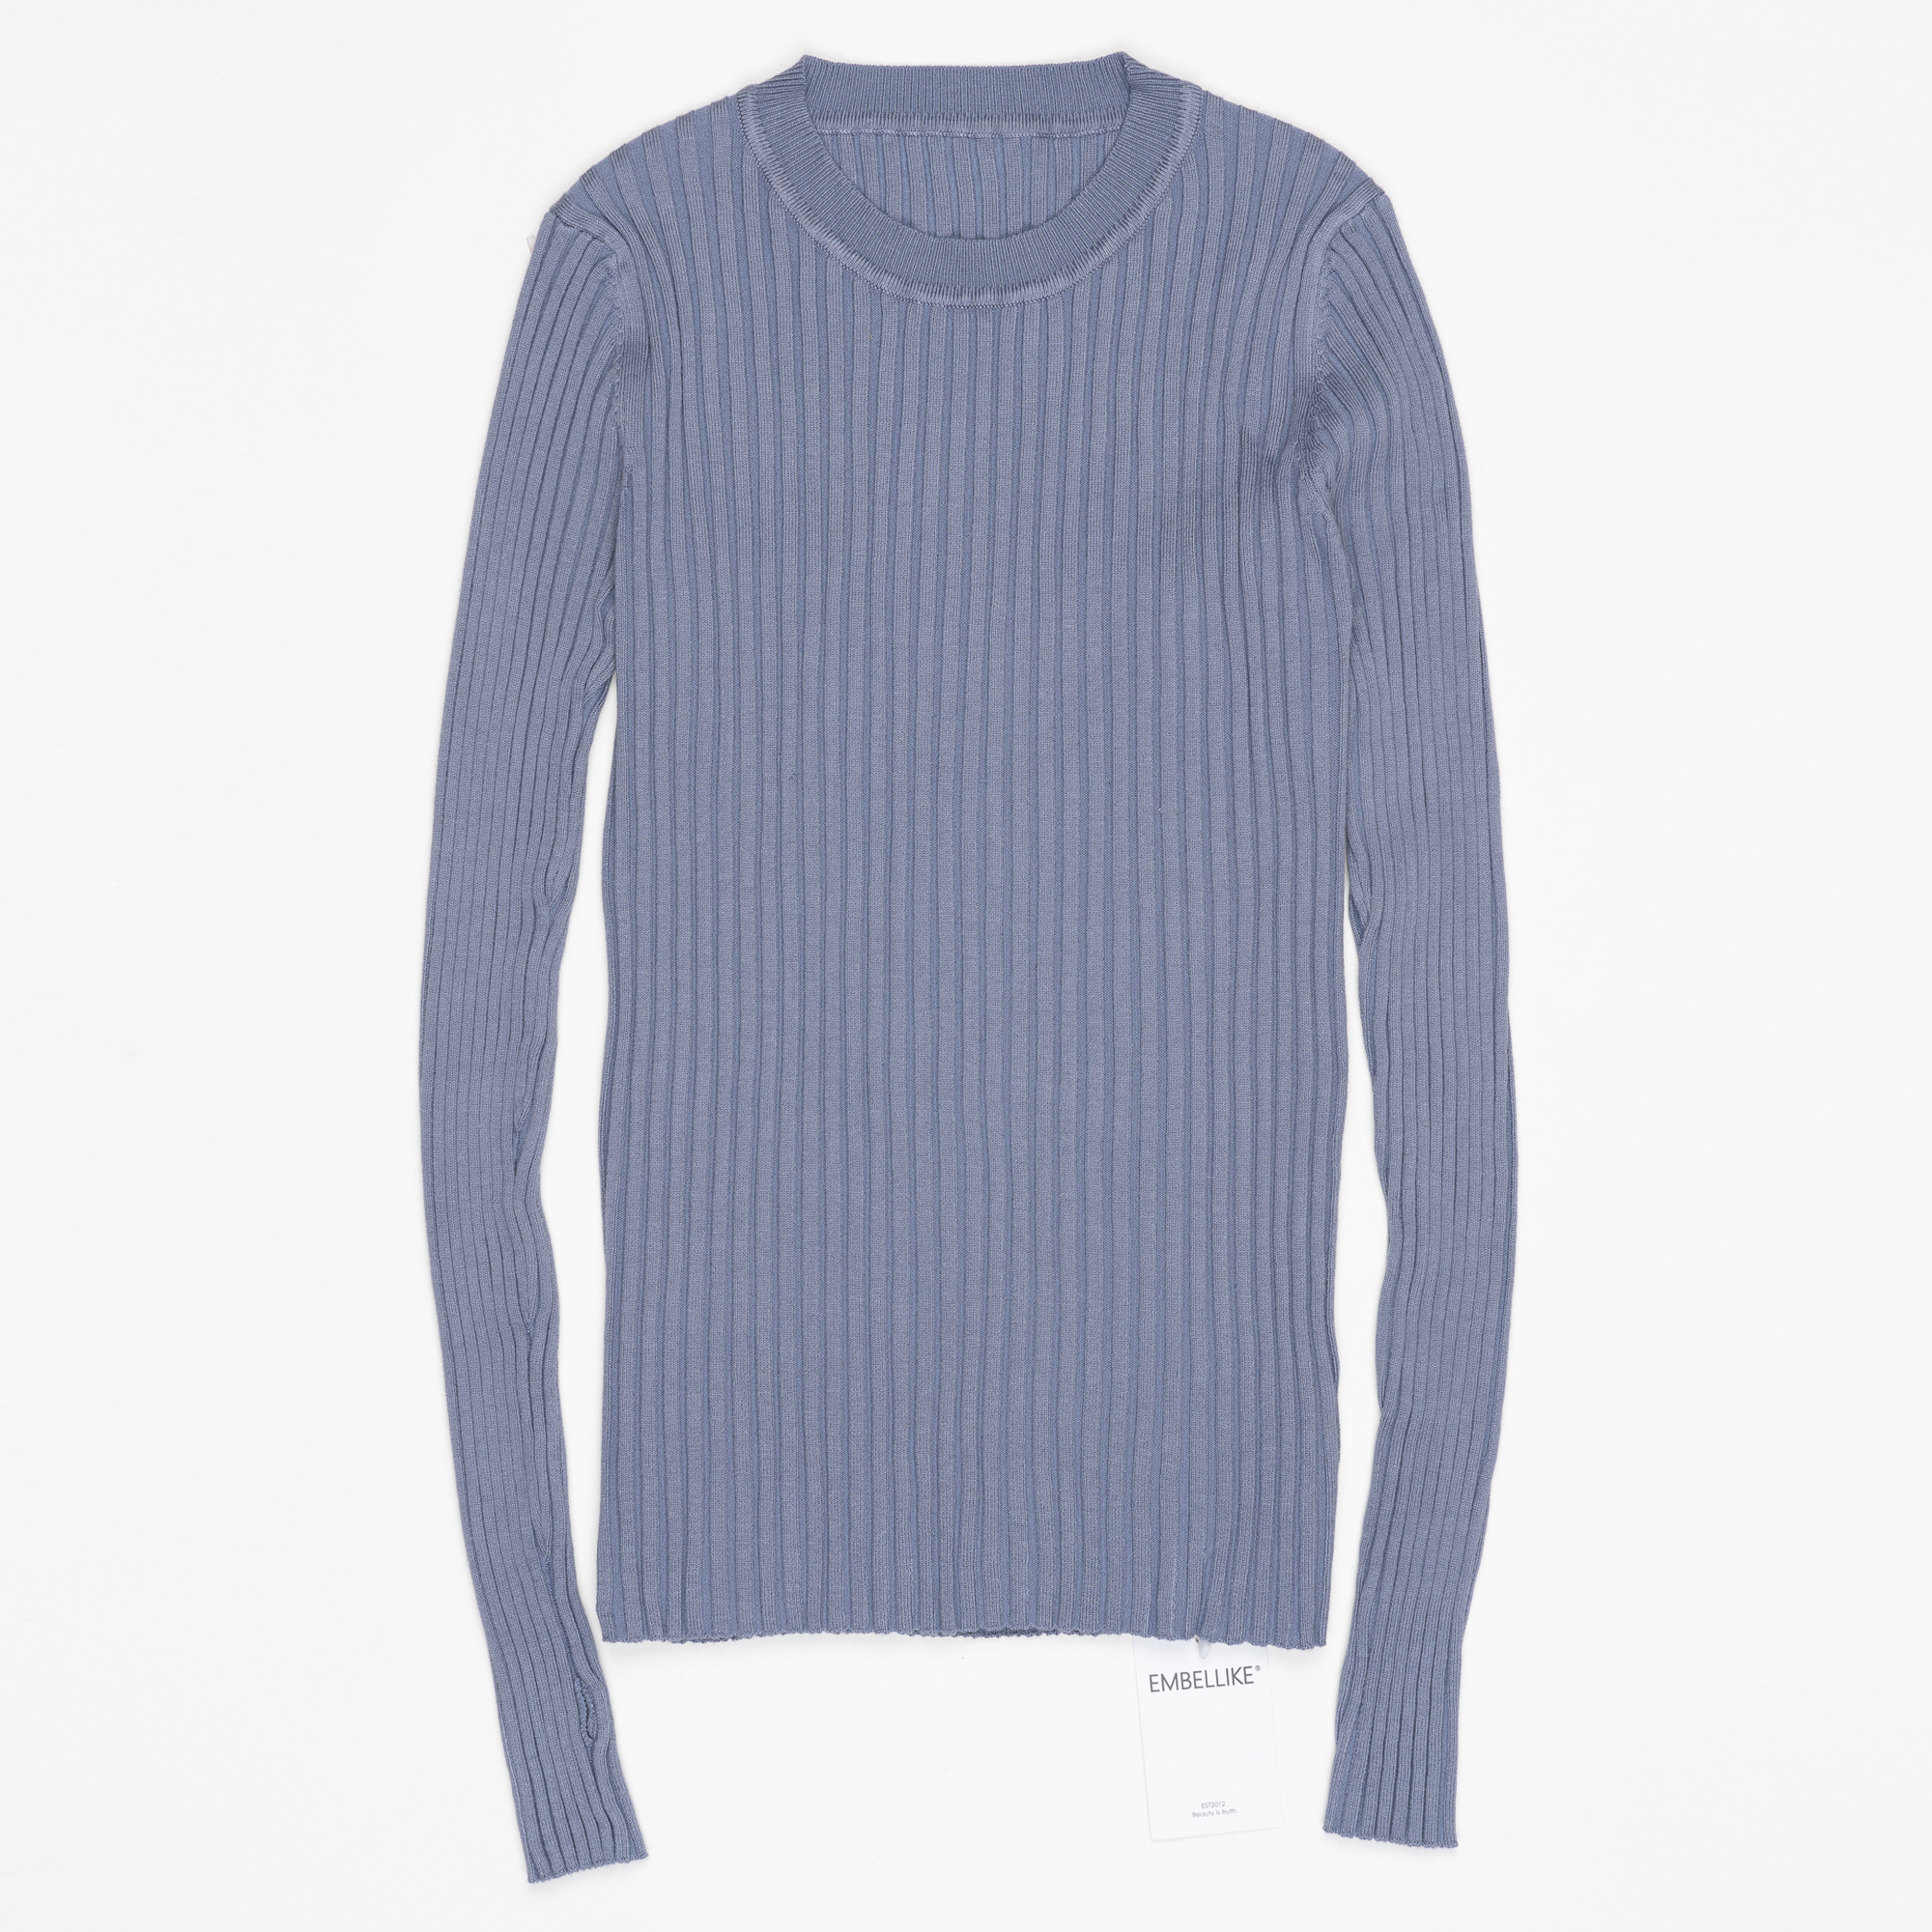 Women Sweater Pullover Basic Ribbed Sweaters Cotton Tops Knitted Solid Crew Neck With Thumb Hole 26